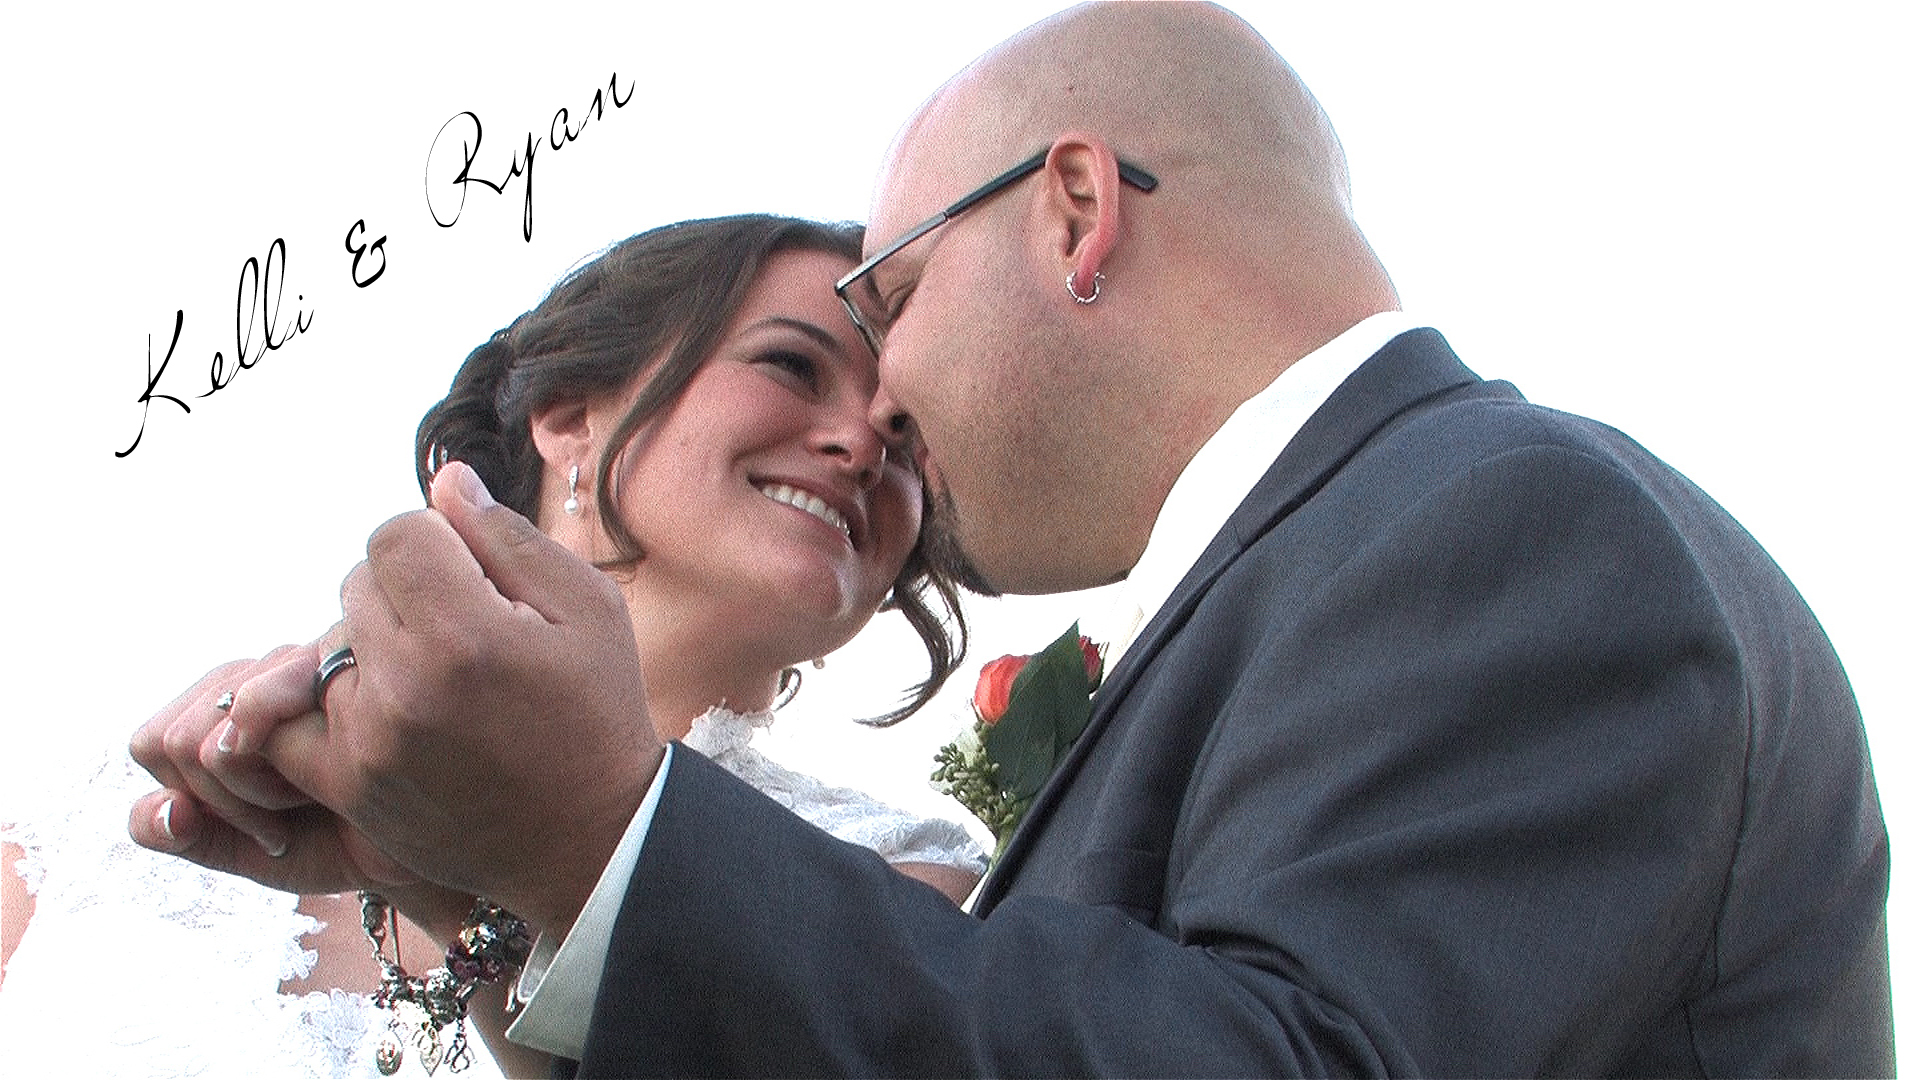 Kelli & Ryan – Buffalo Wedding Video